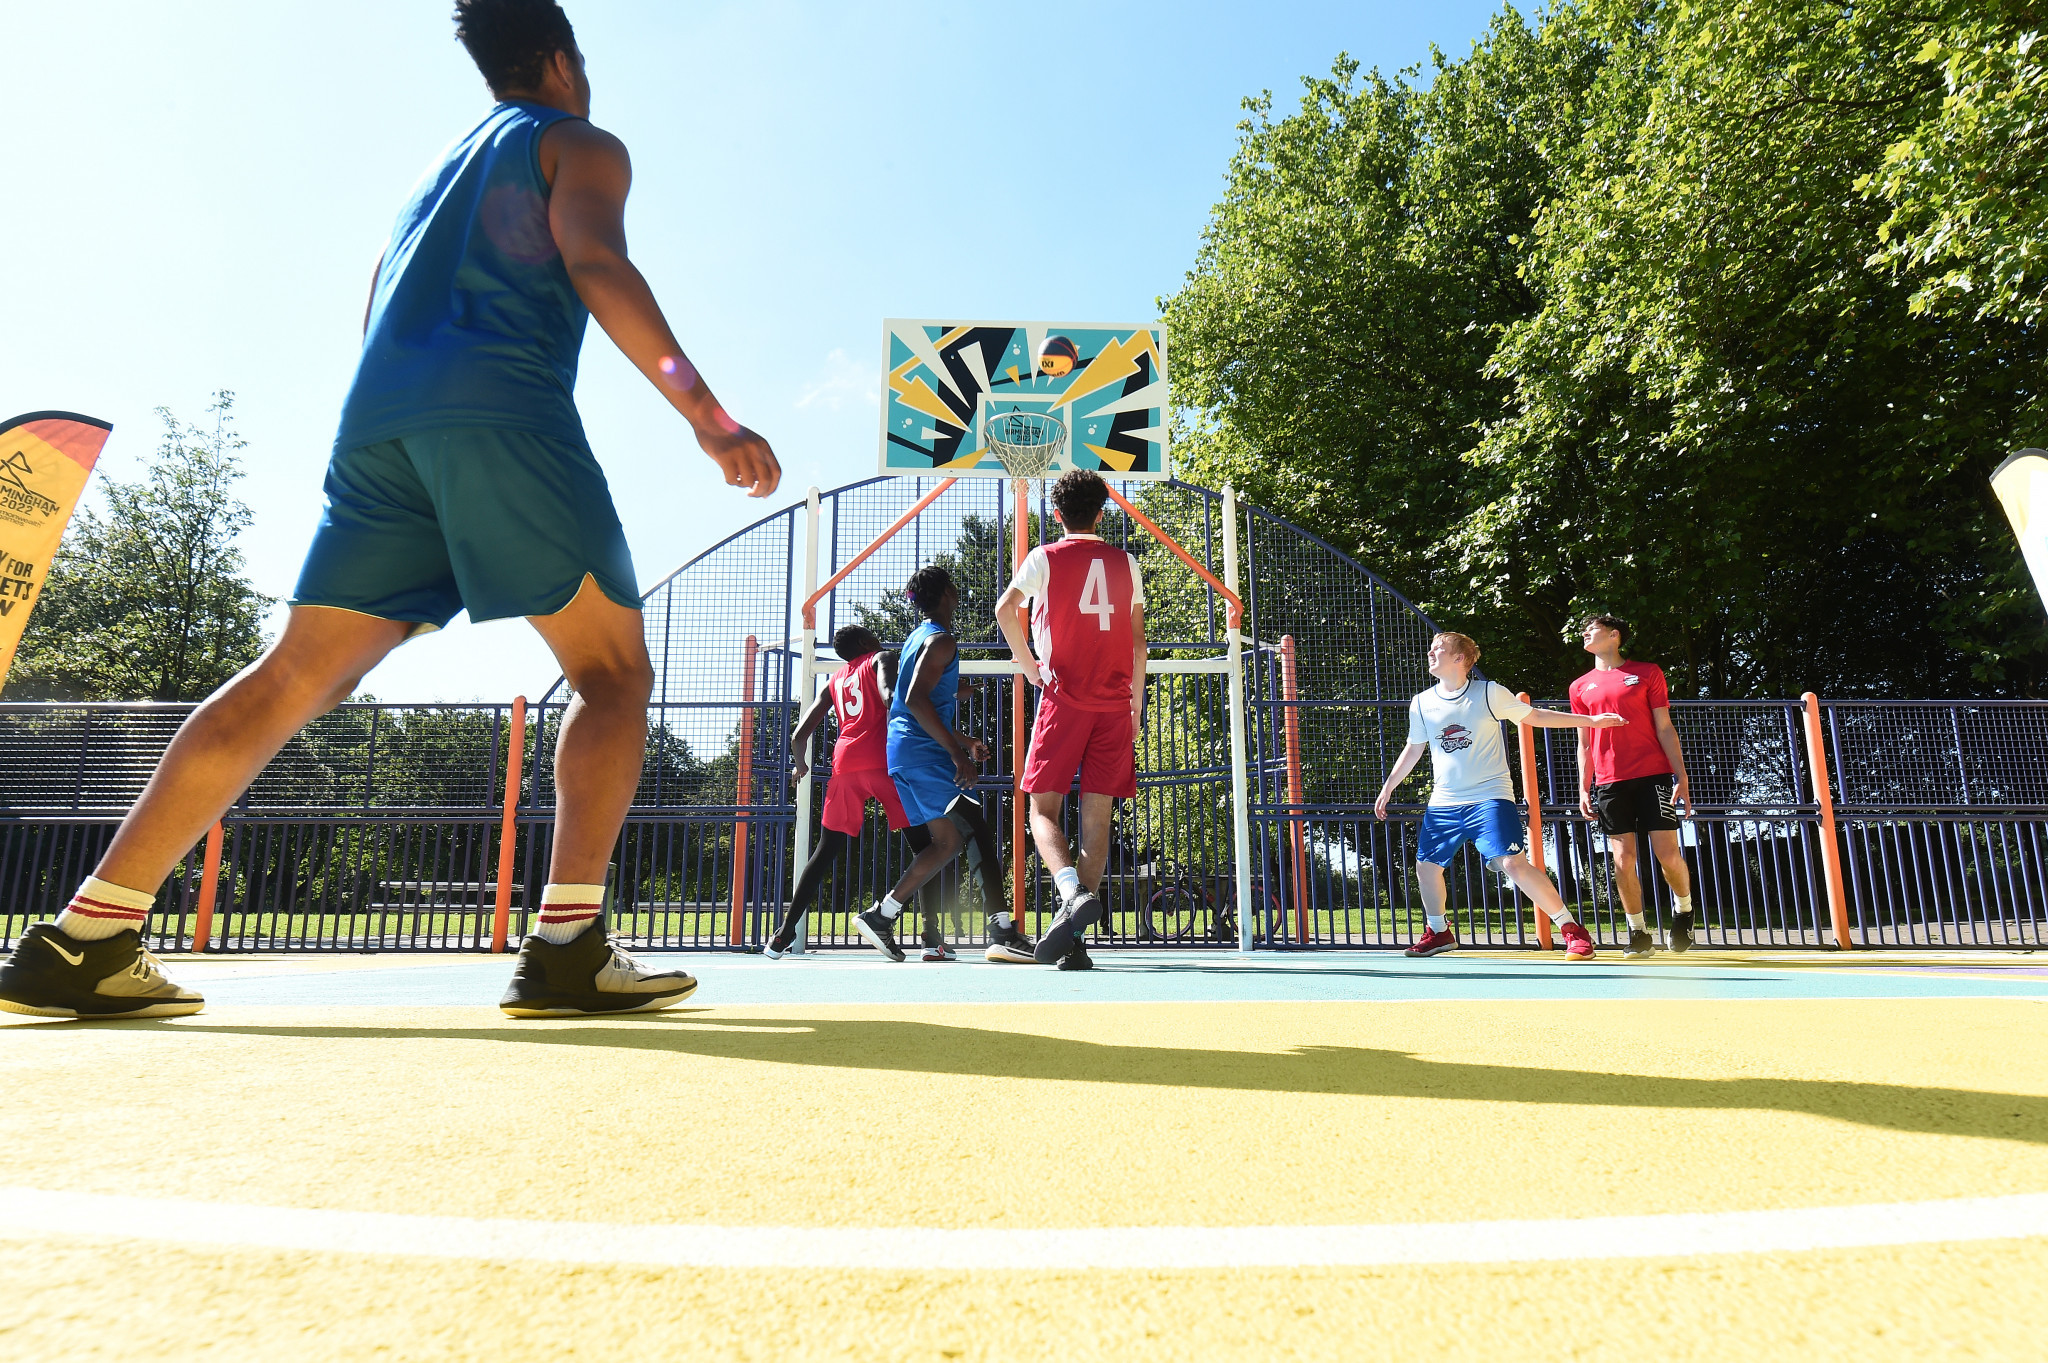 Second round of Celebrating Communities funding opens before Birmingham 2022 Commonwealth Games